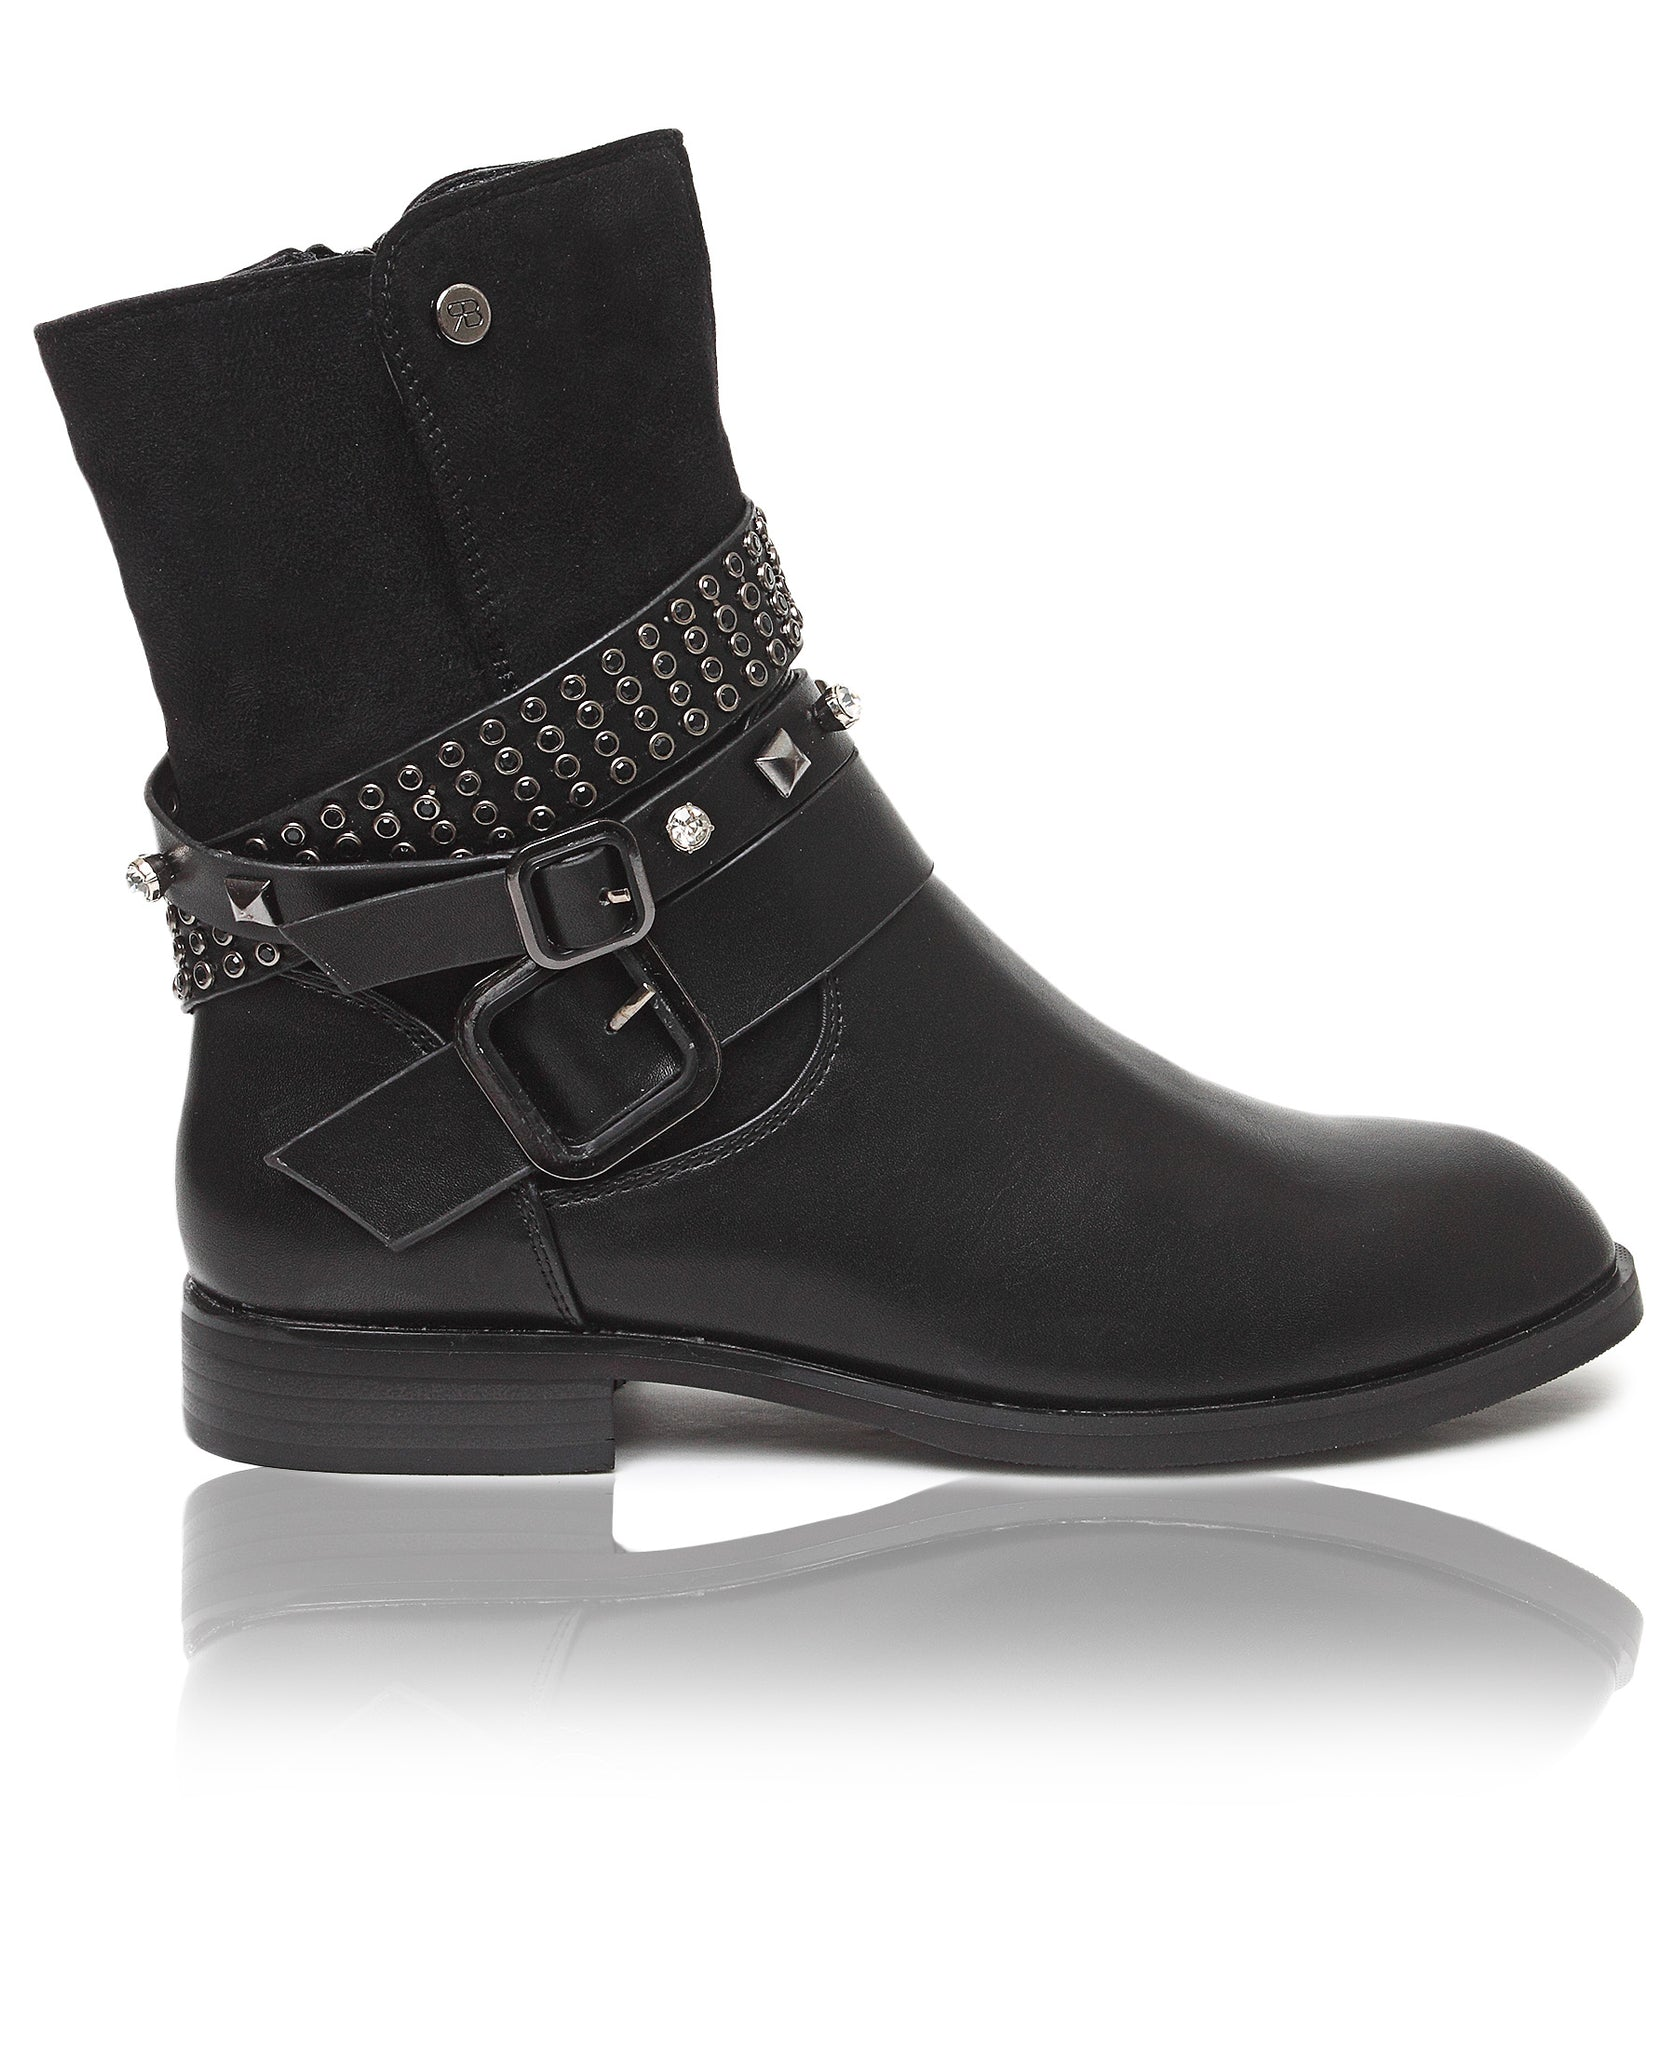 Mid Calf Boots - Black